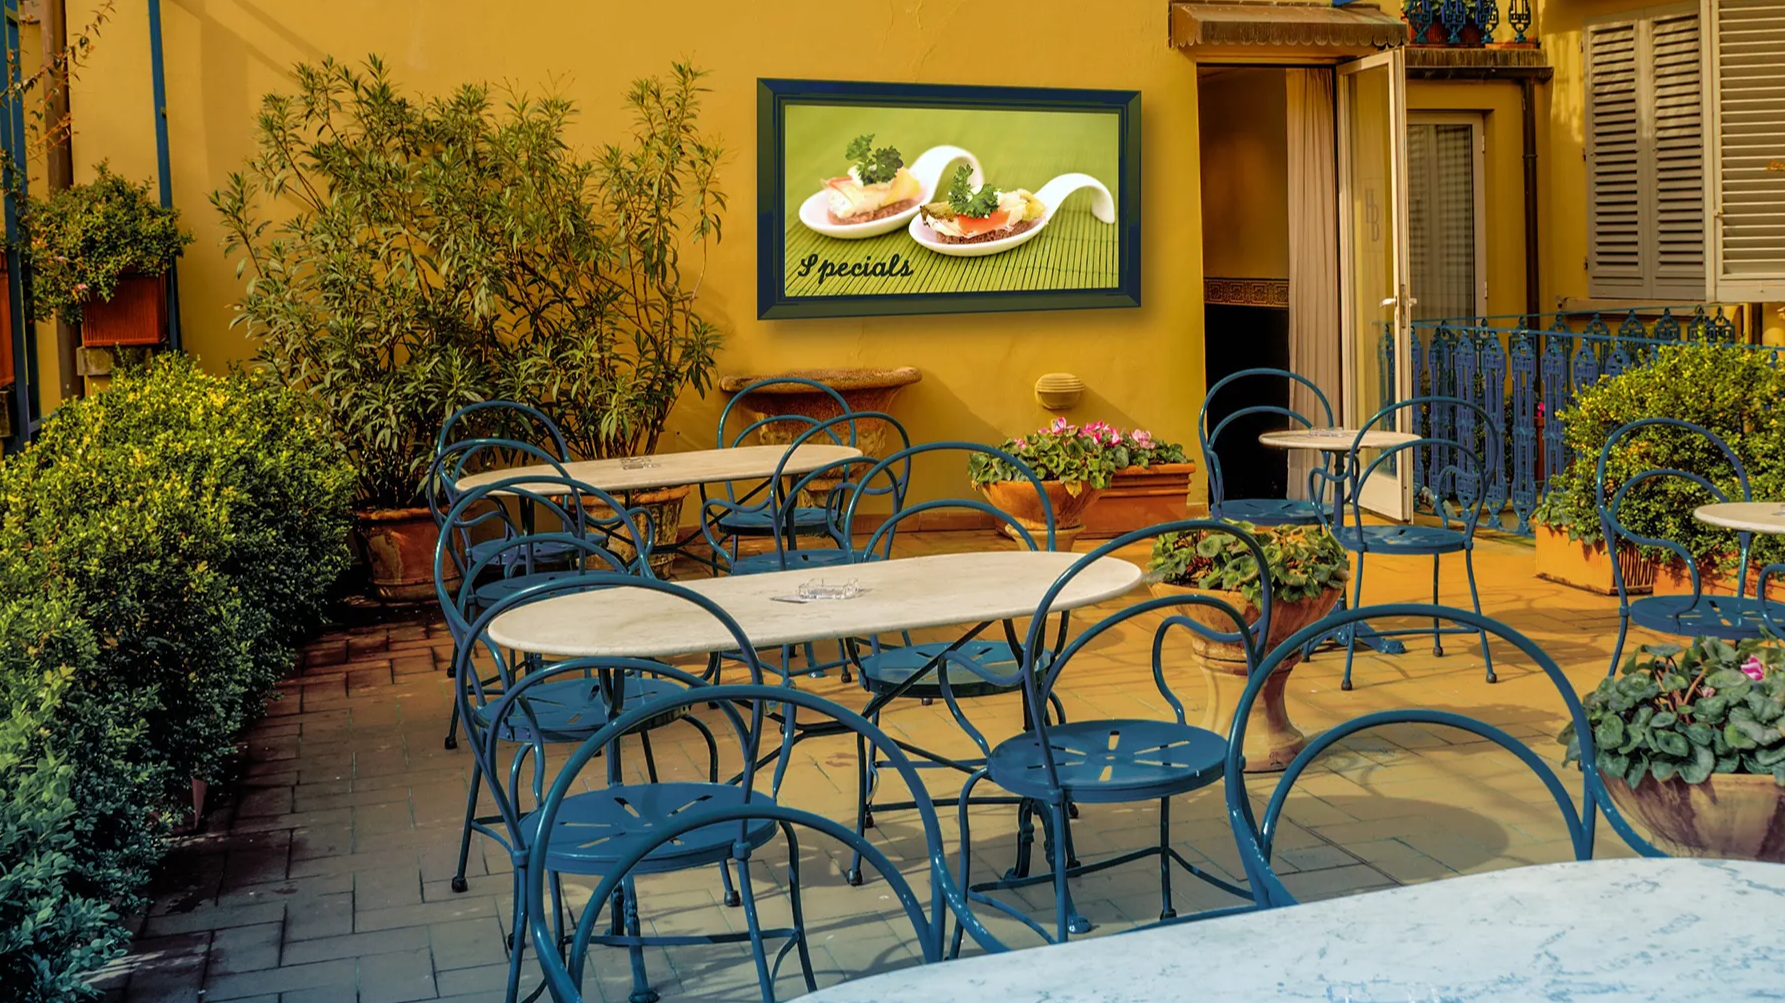 Custom color outdoor TV cabinet on patio at eatery